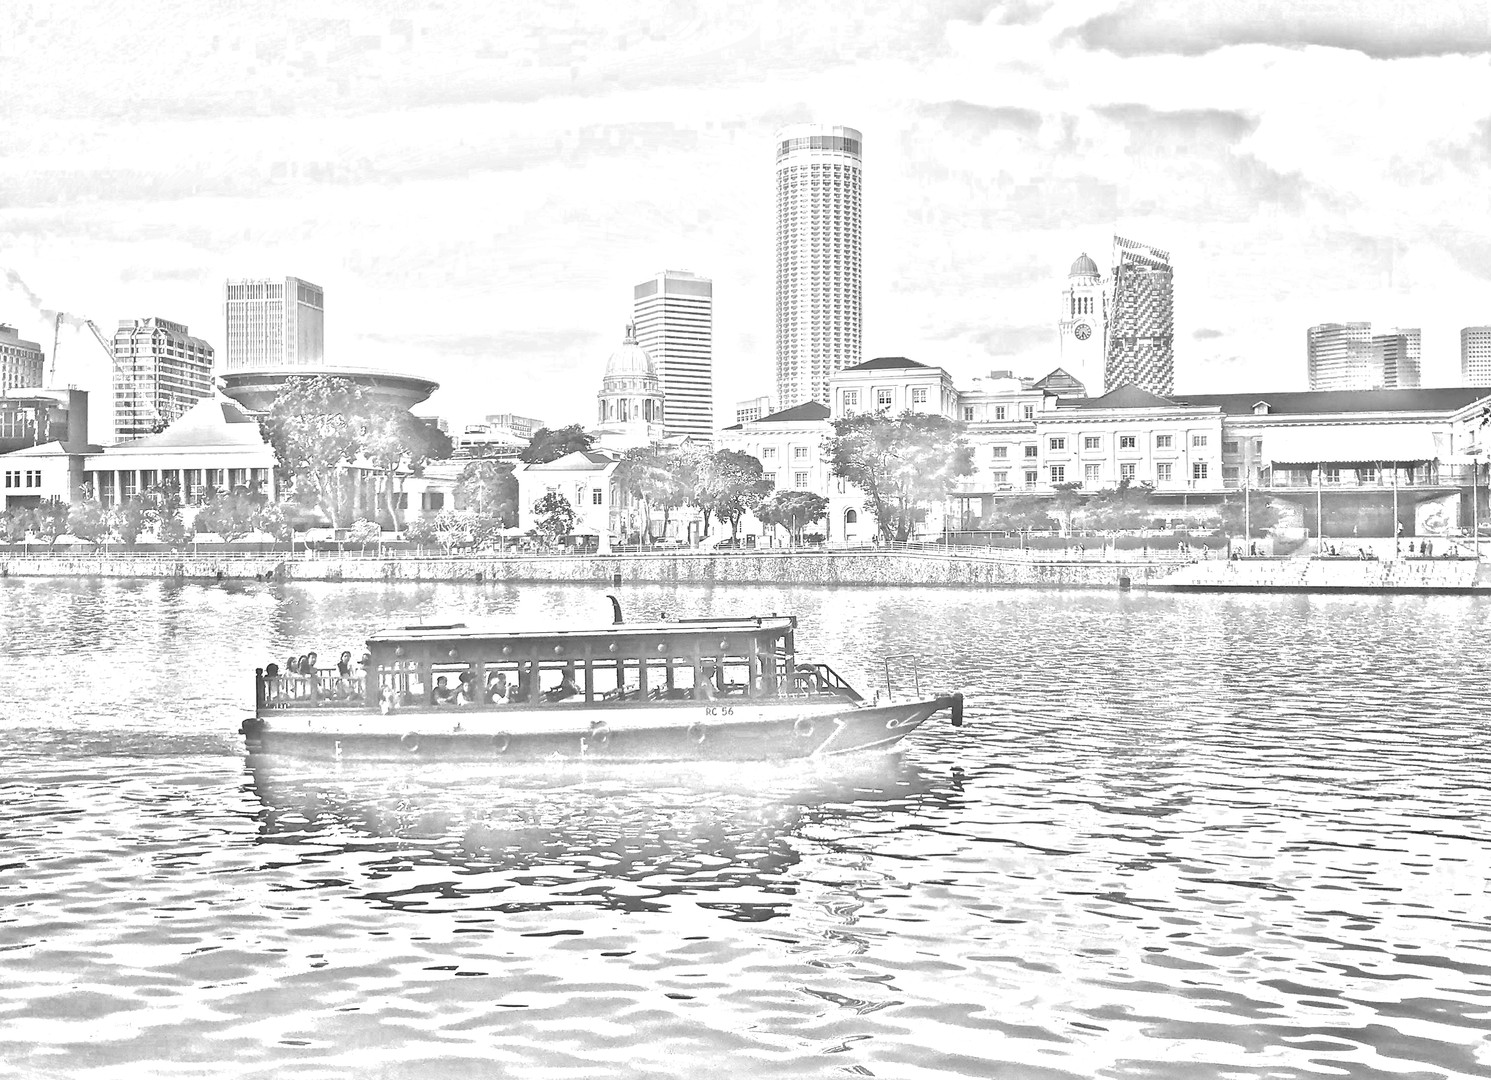 Singapore River Cityscape 1 - digital sk